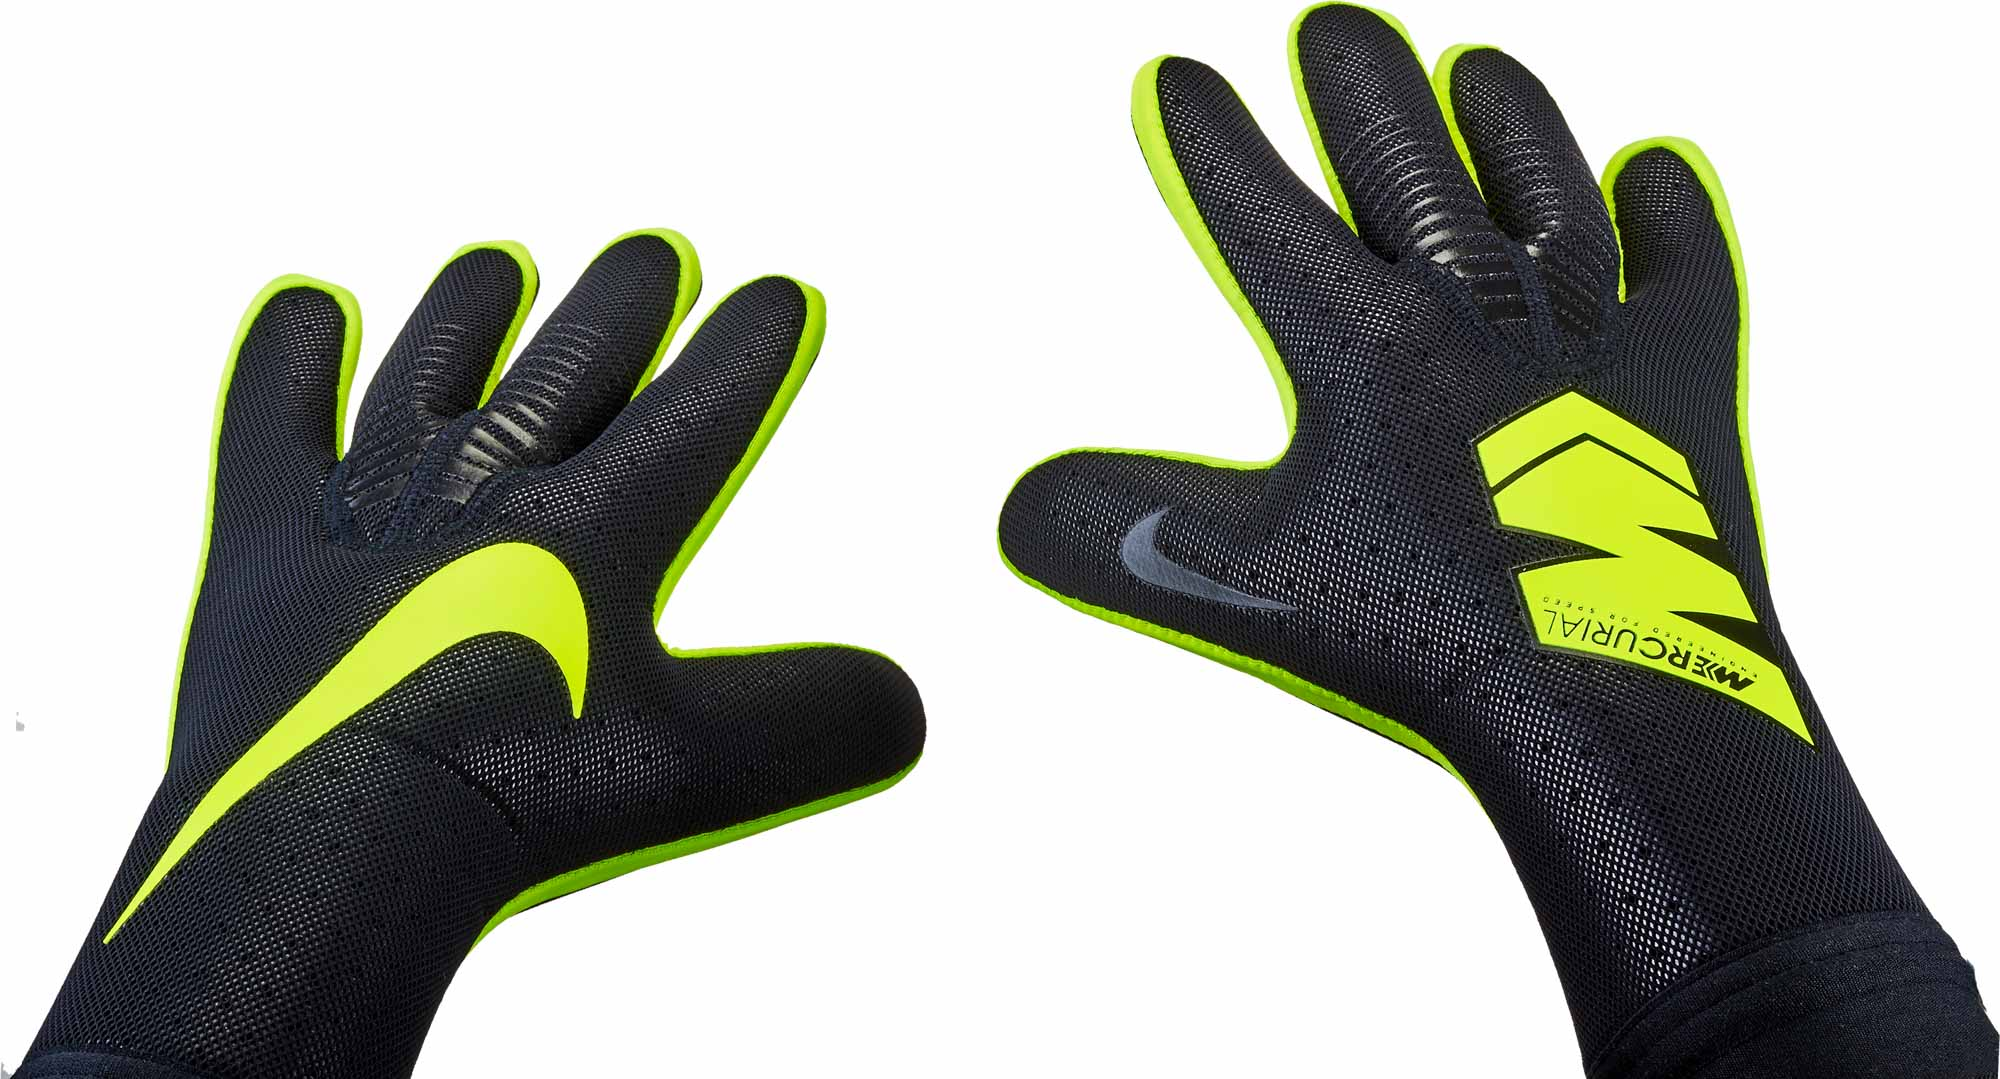 Nike Vapor Touch Goalkeeper Gloves - Black Volt - SoccerPro.com 6190dd885